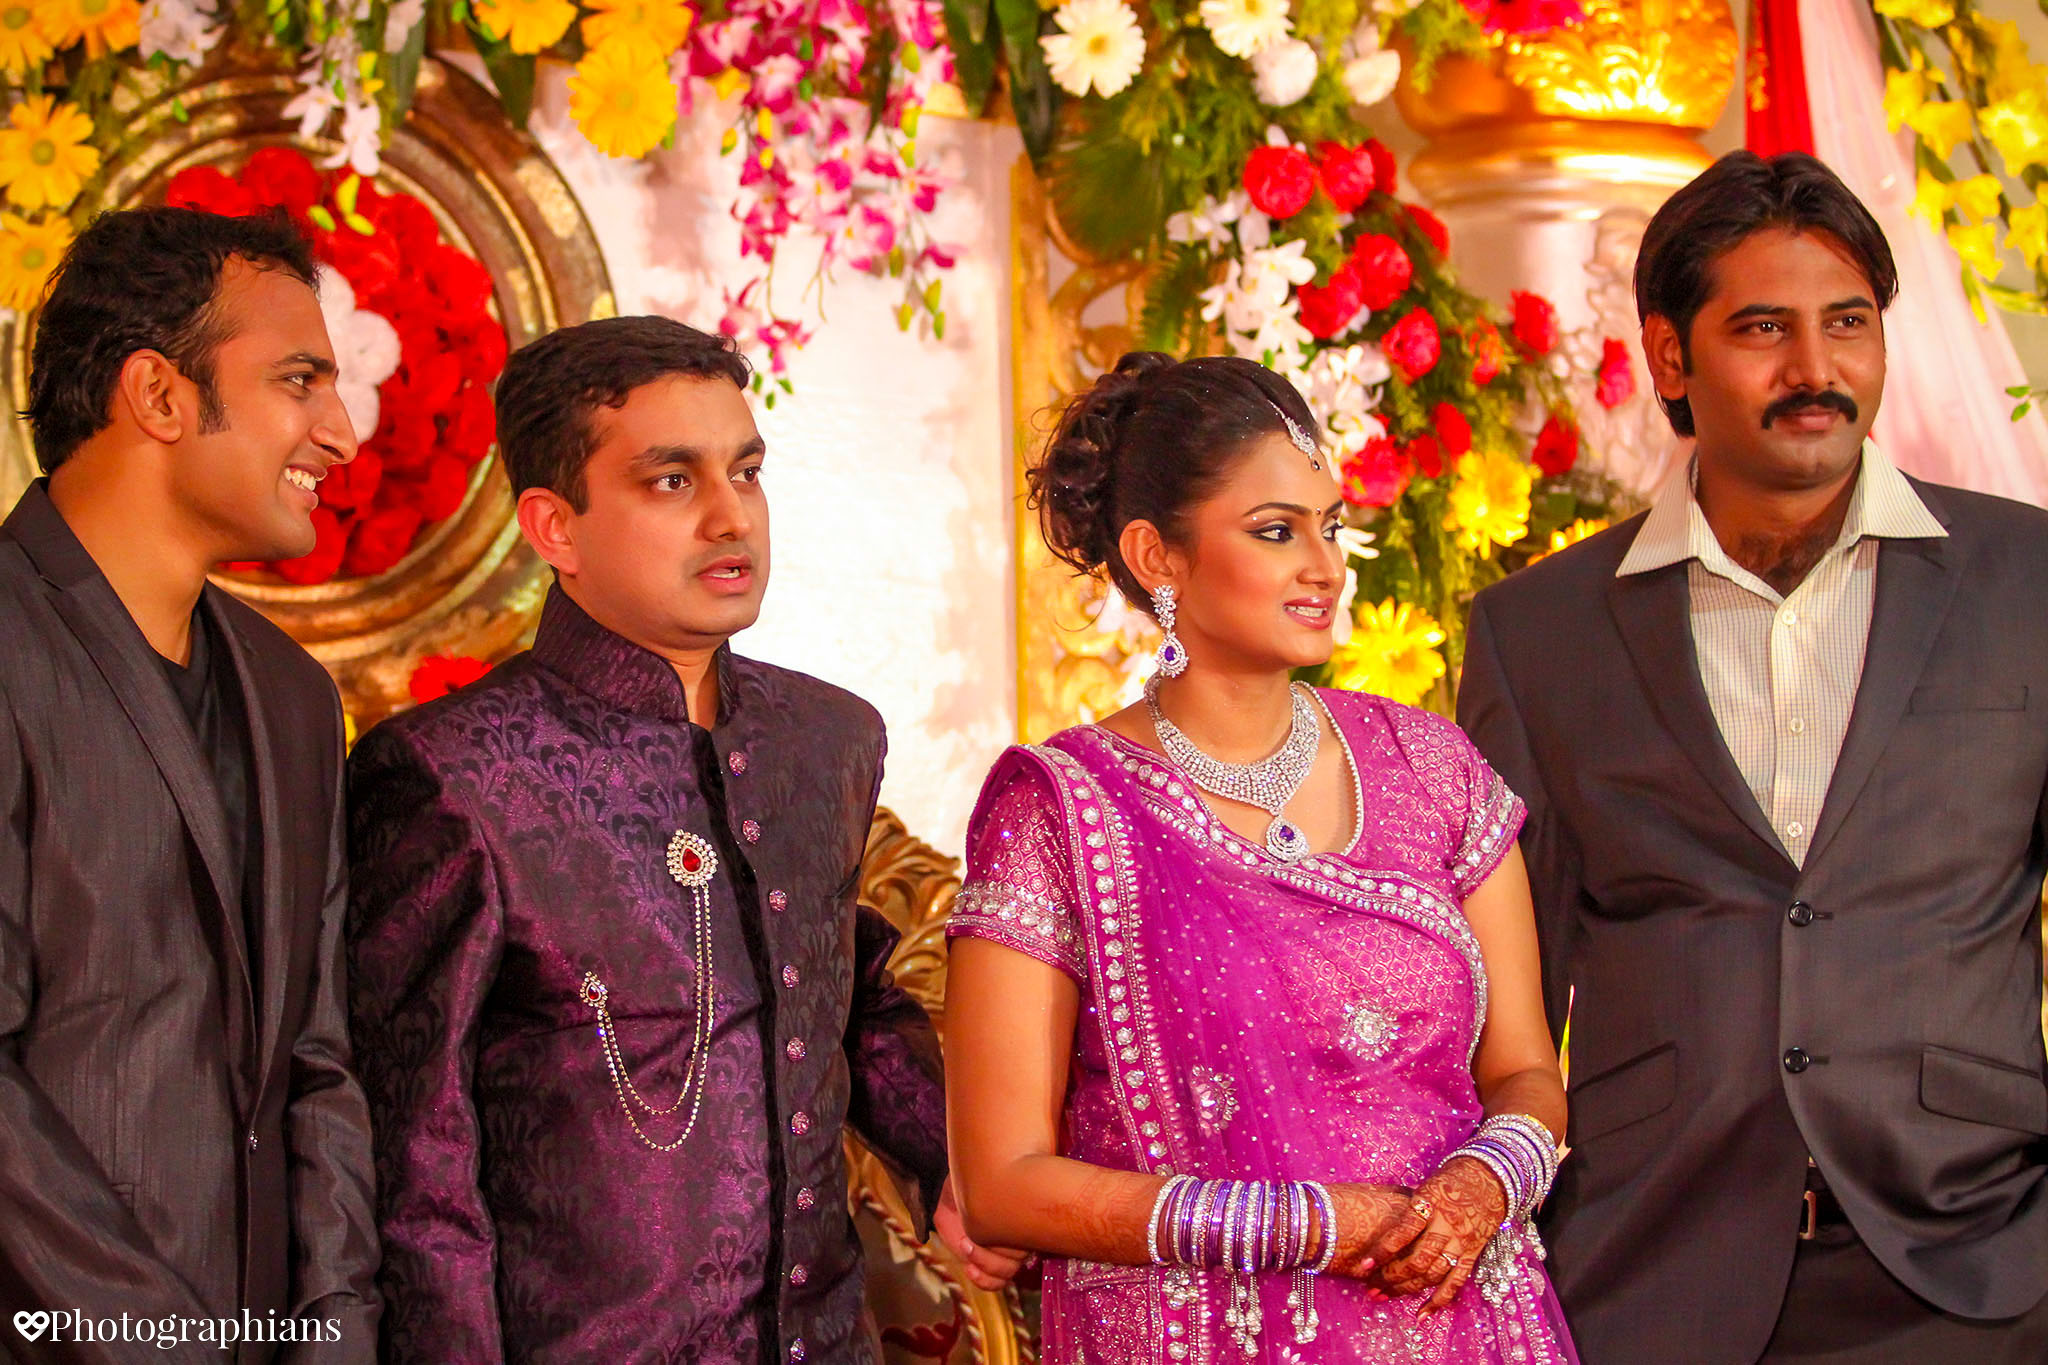 Photographians_Indian_Wedding_Durgapur_065